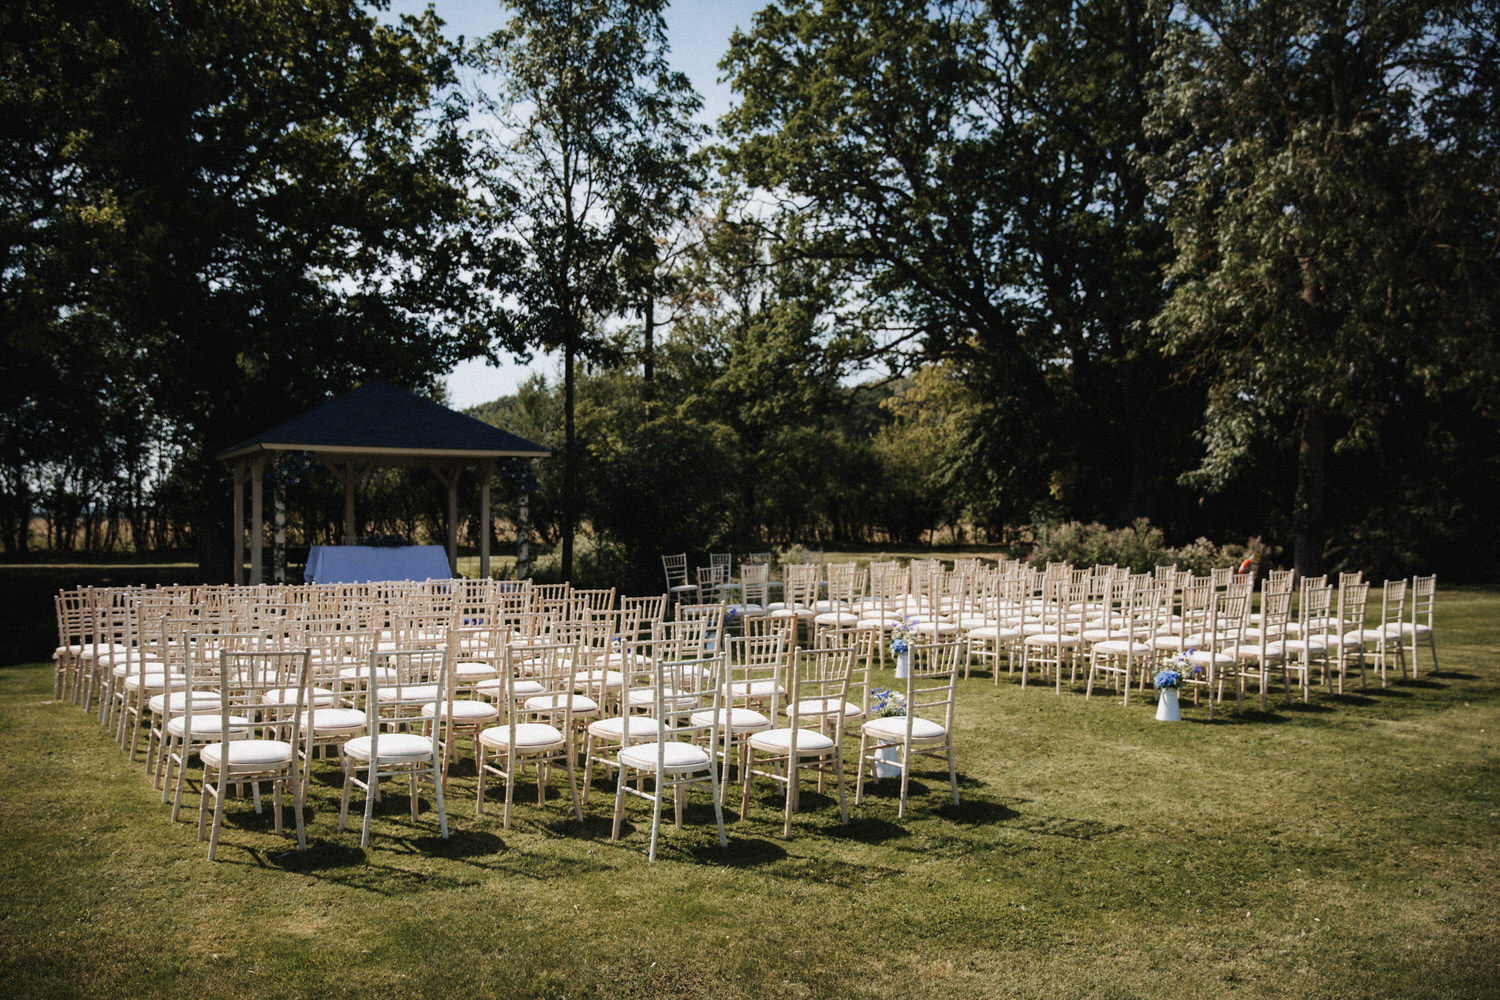 Colville Hall outdoor wedding setting. Chairs lined in front of the wooden Pagoda.